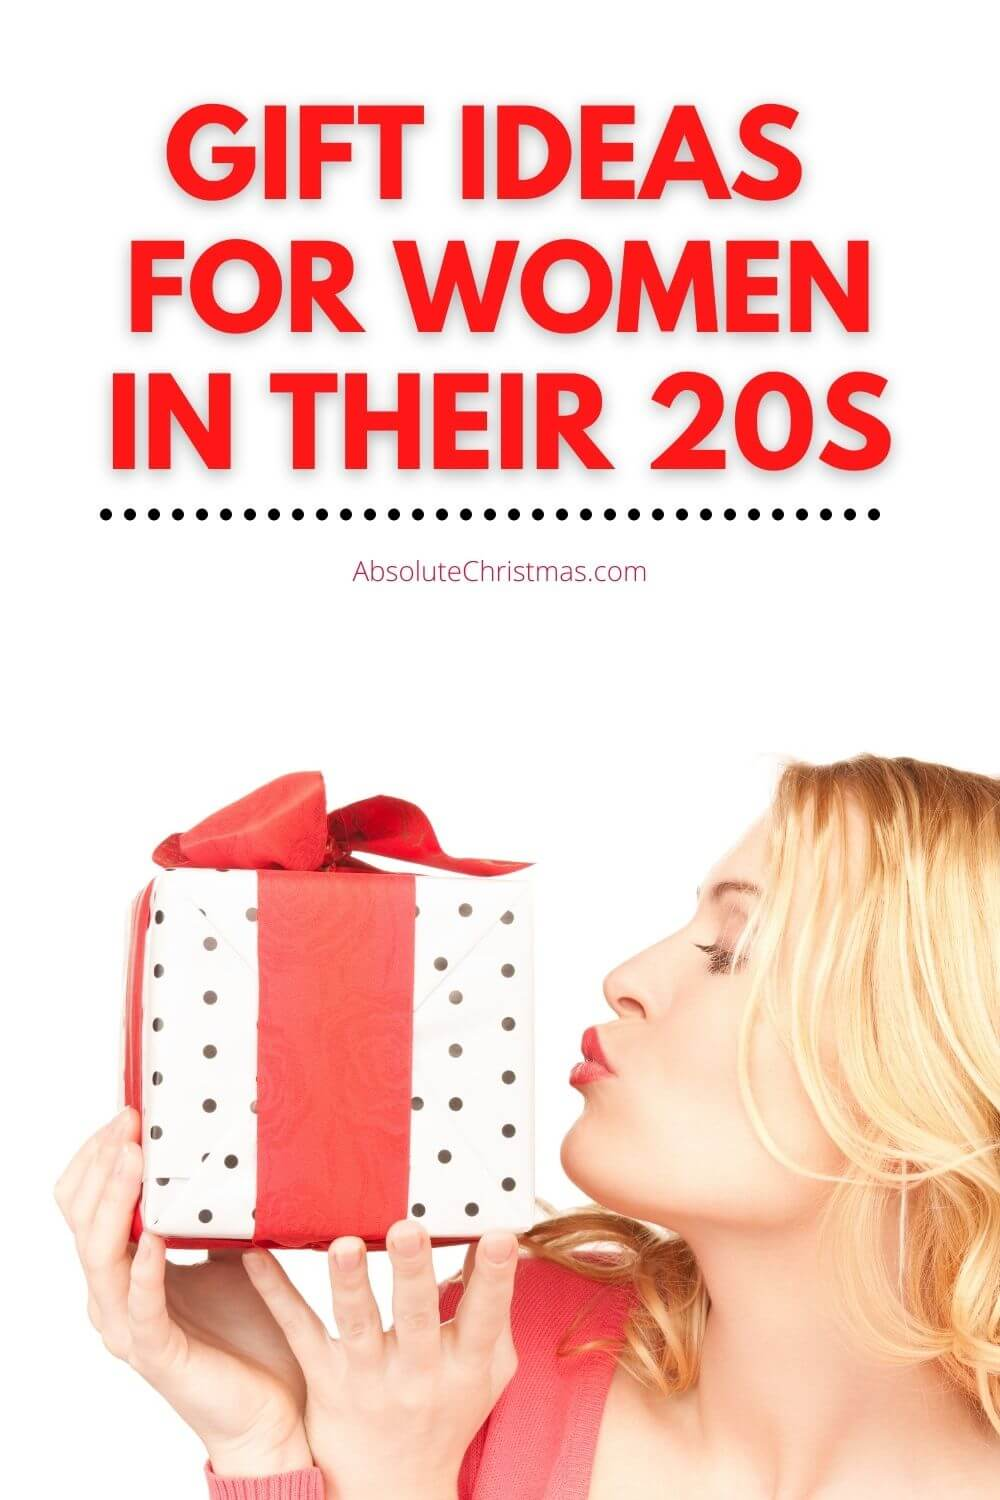 Gifts for Women In Their 20s - cool gifts for 20 something women